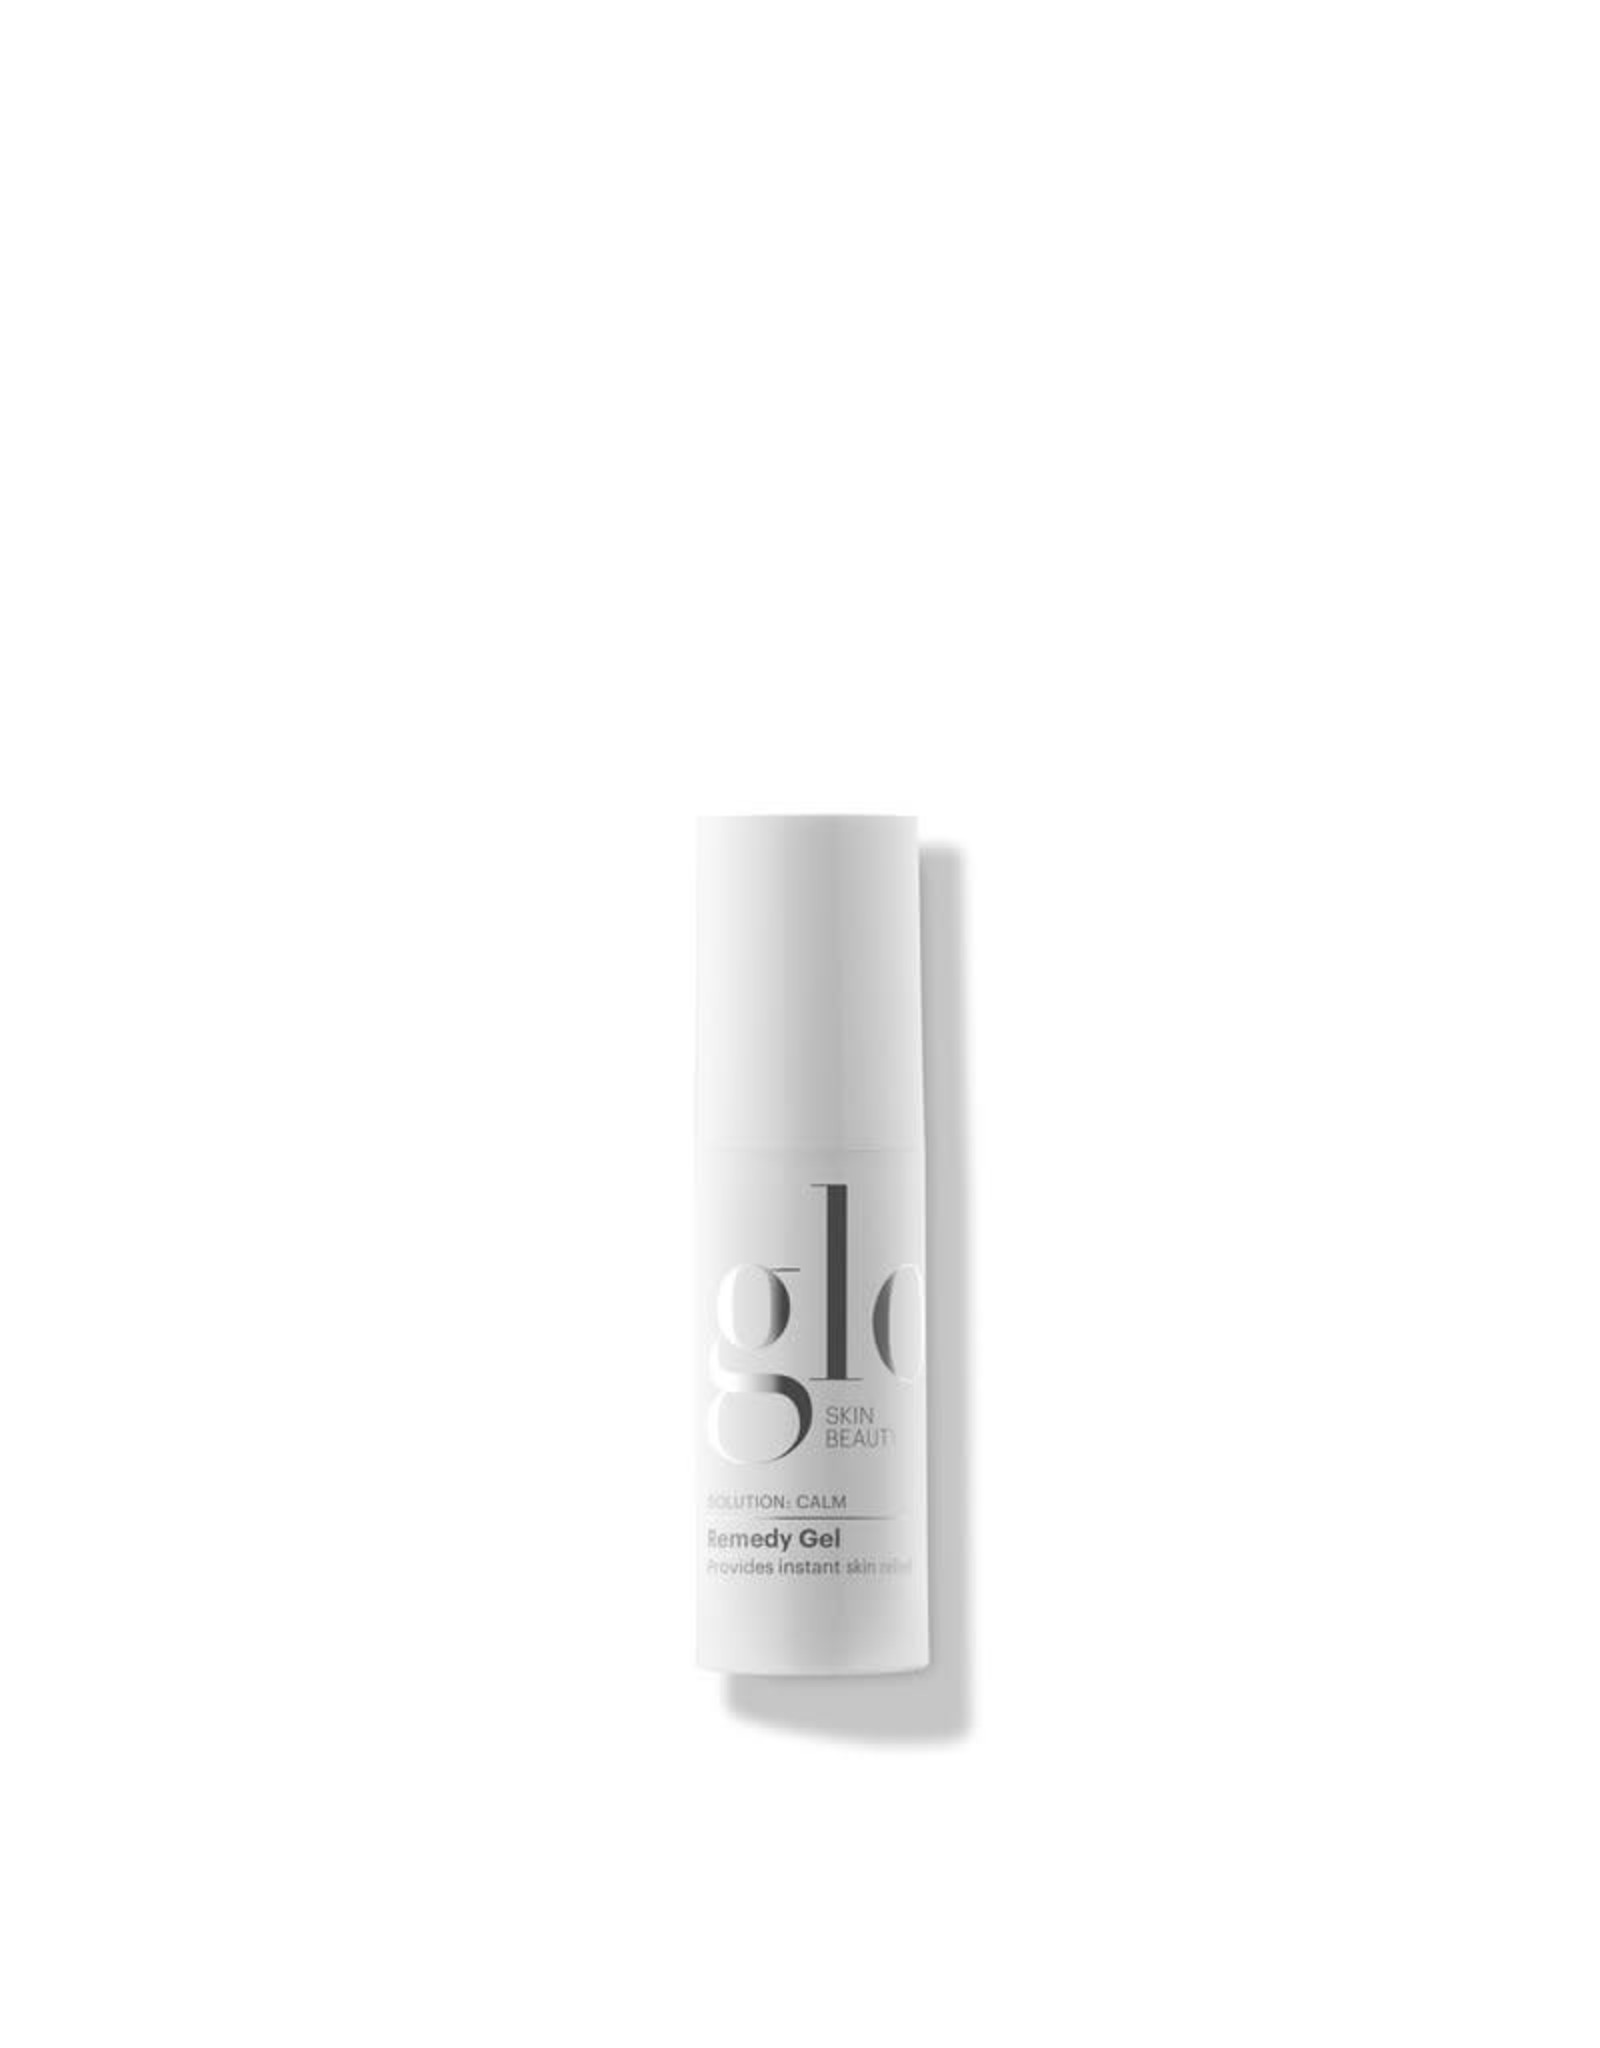 Glo Skin Beauty Remedy Gel